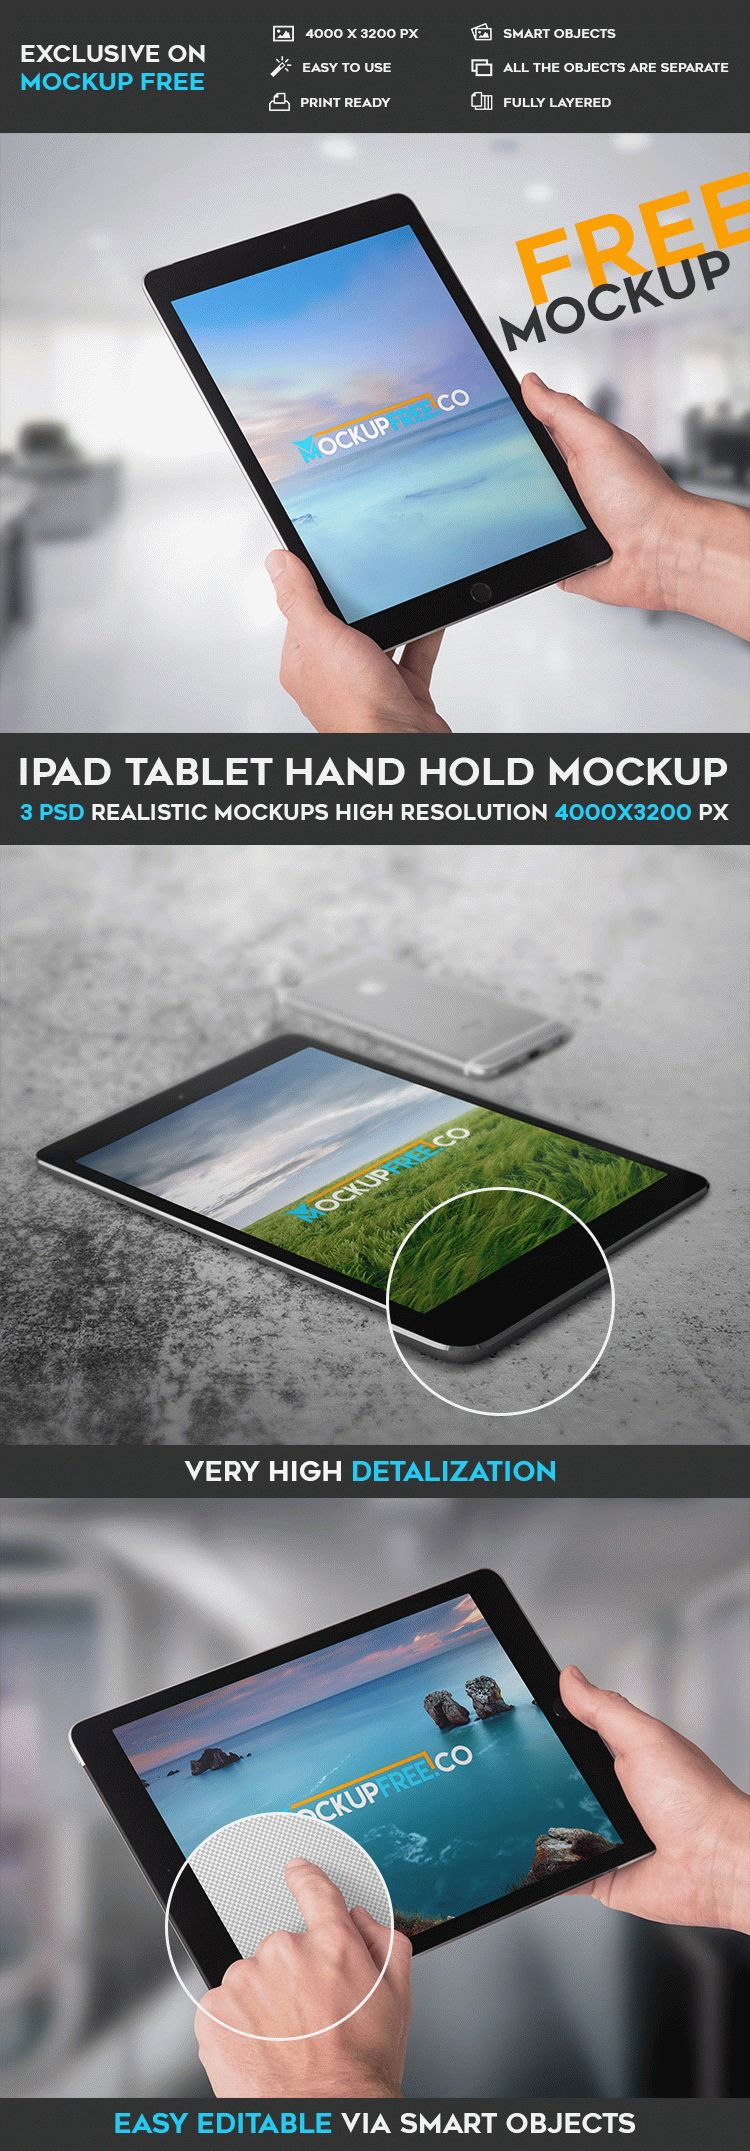 bigpreview_ipad-tablet-hand-hold-free-psd-mockup